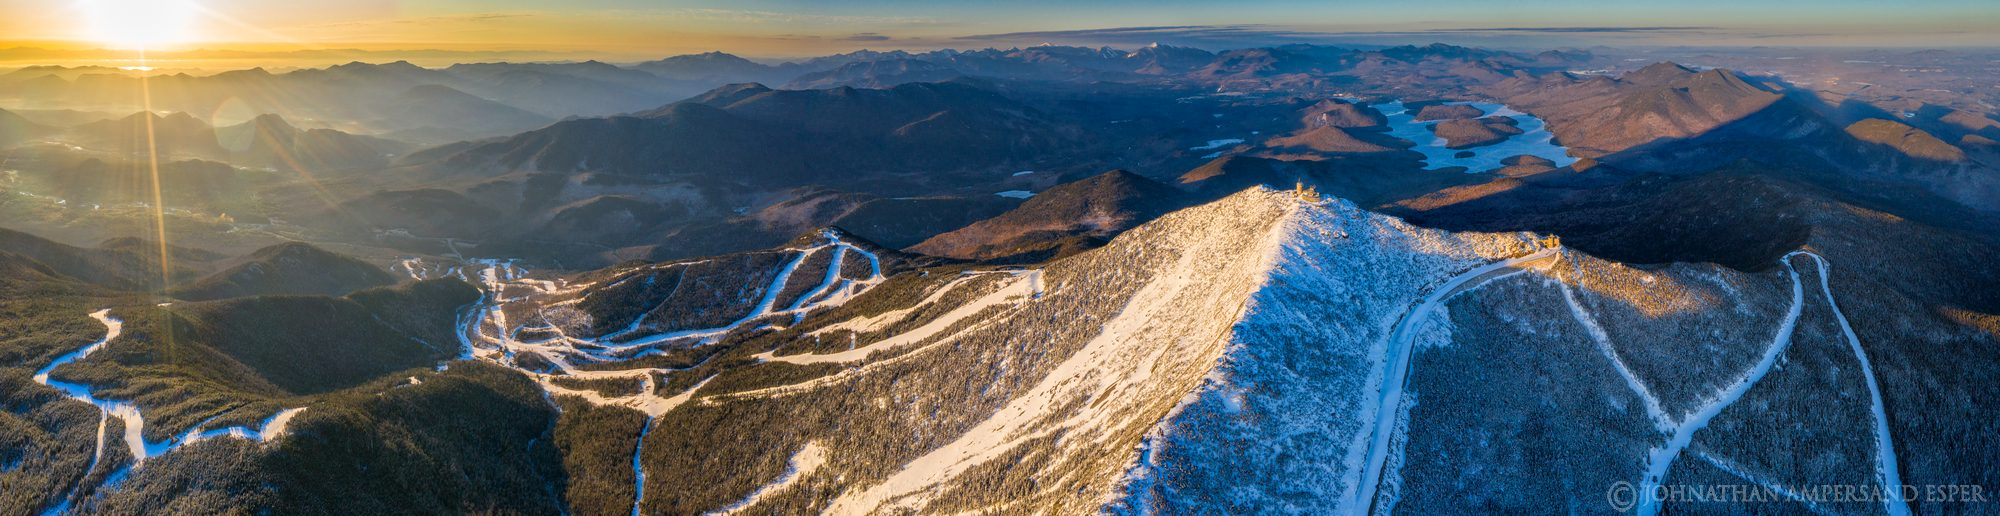 Whiteface Mt,Whiteface Mountain,Whiteface Ski Area,ski area,trails,Whiteface Mt ski area,summit,winter,March,2020,drone,aerial...